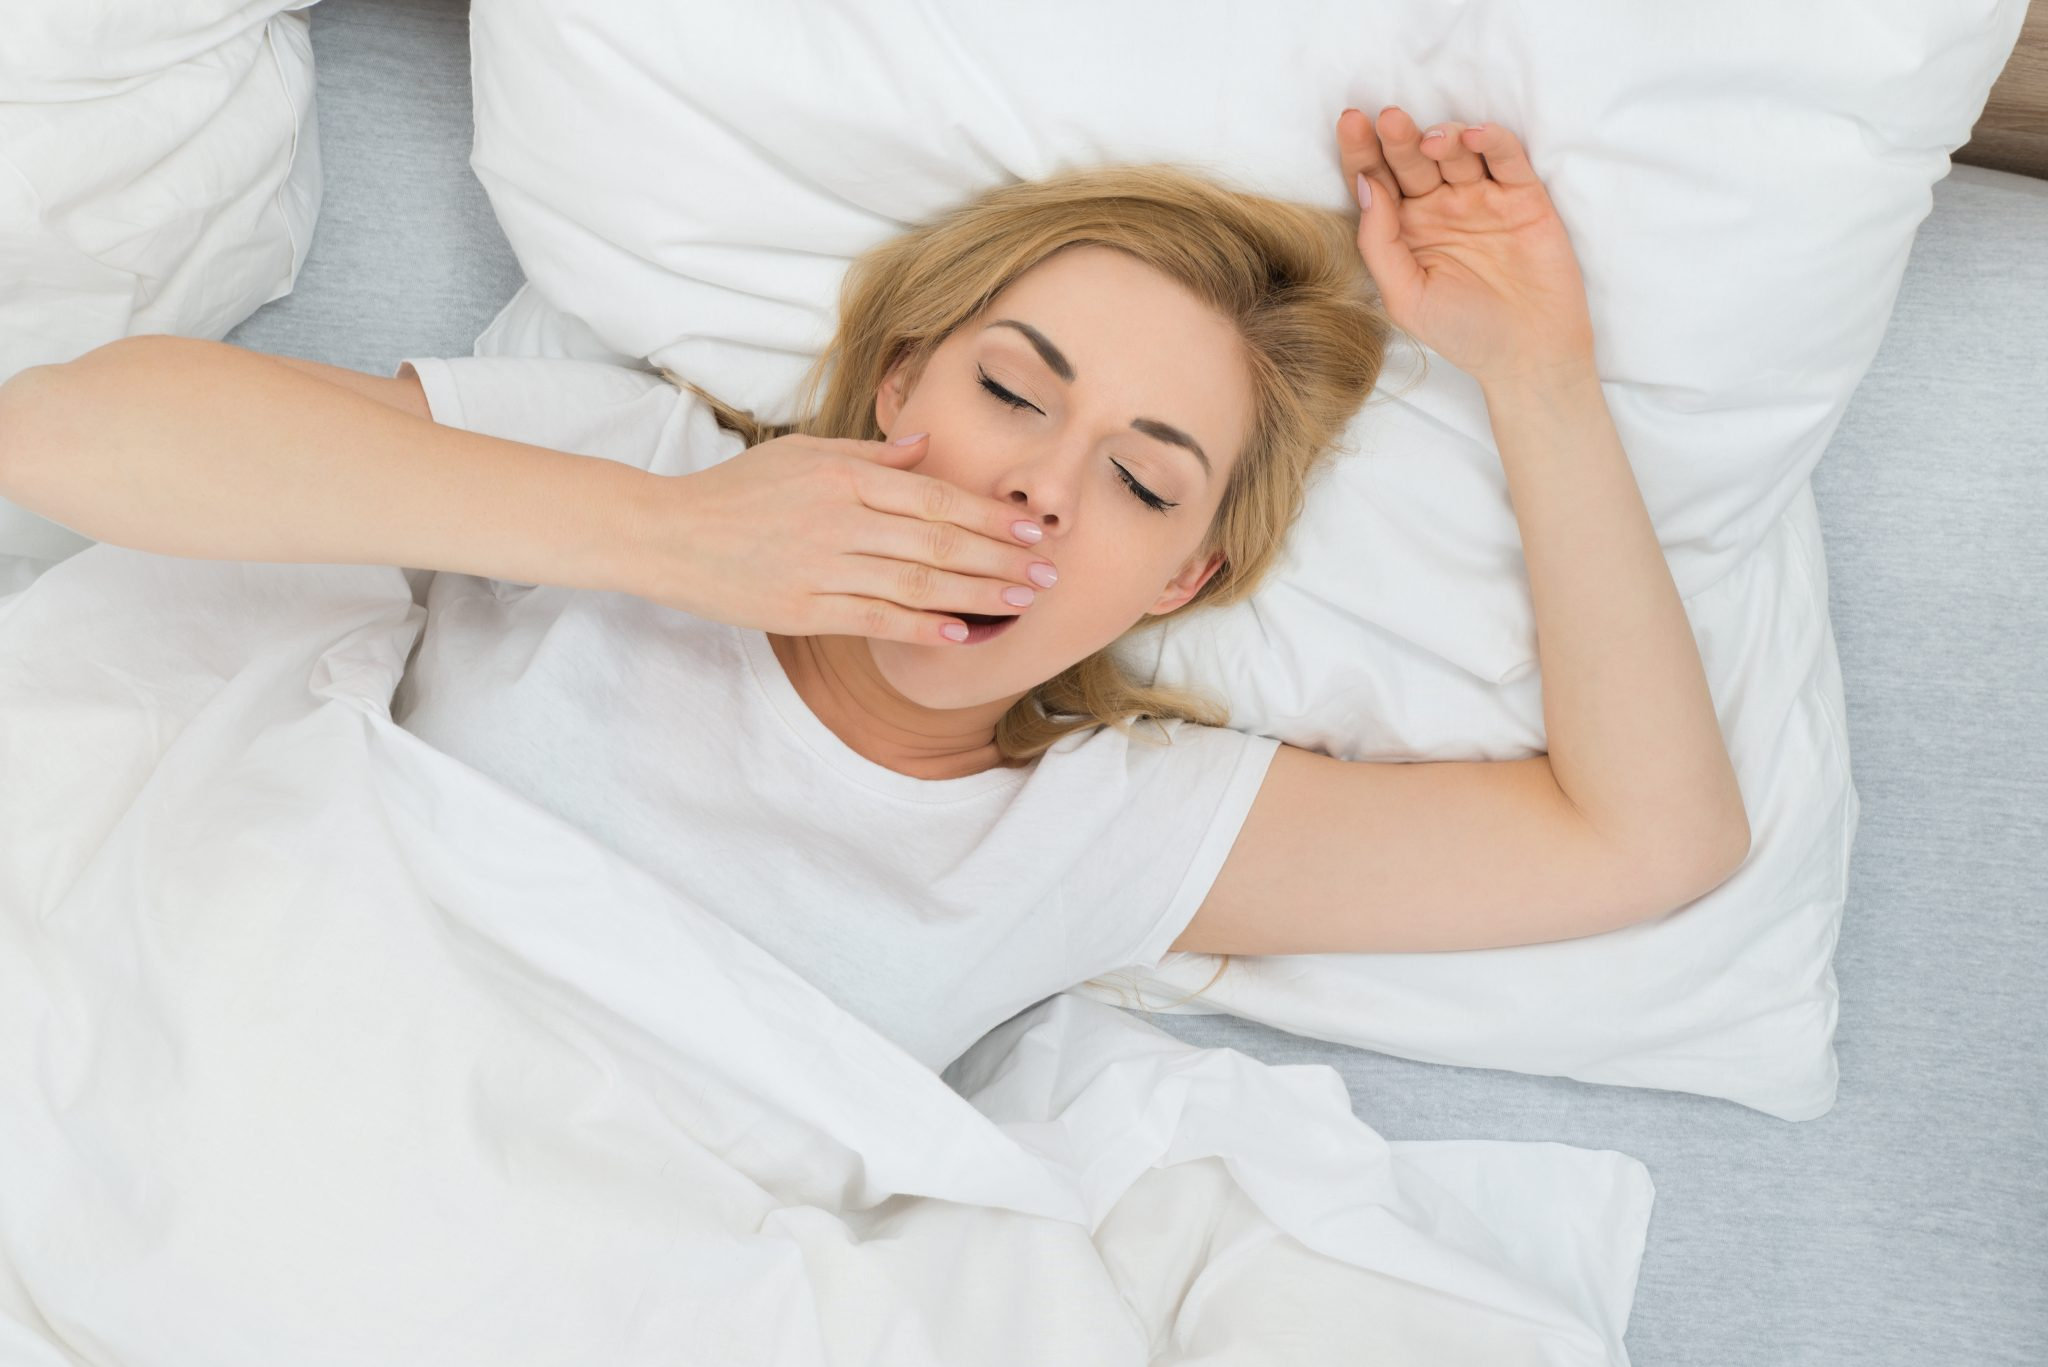 How does your sleep position affect your health?